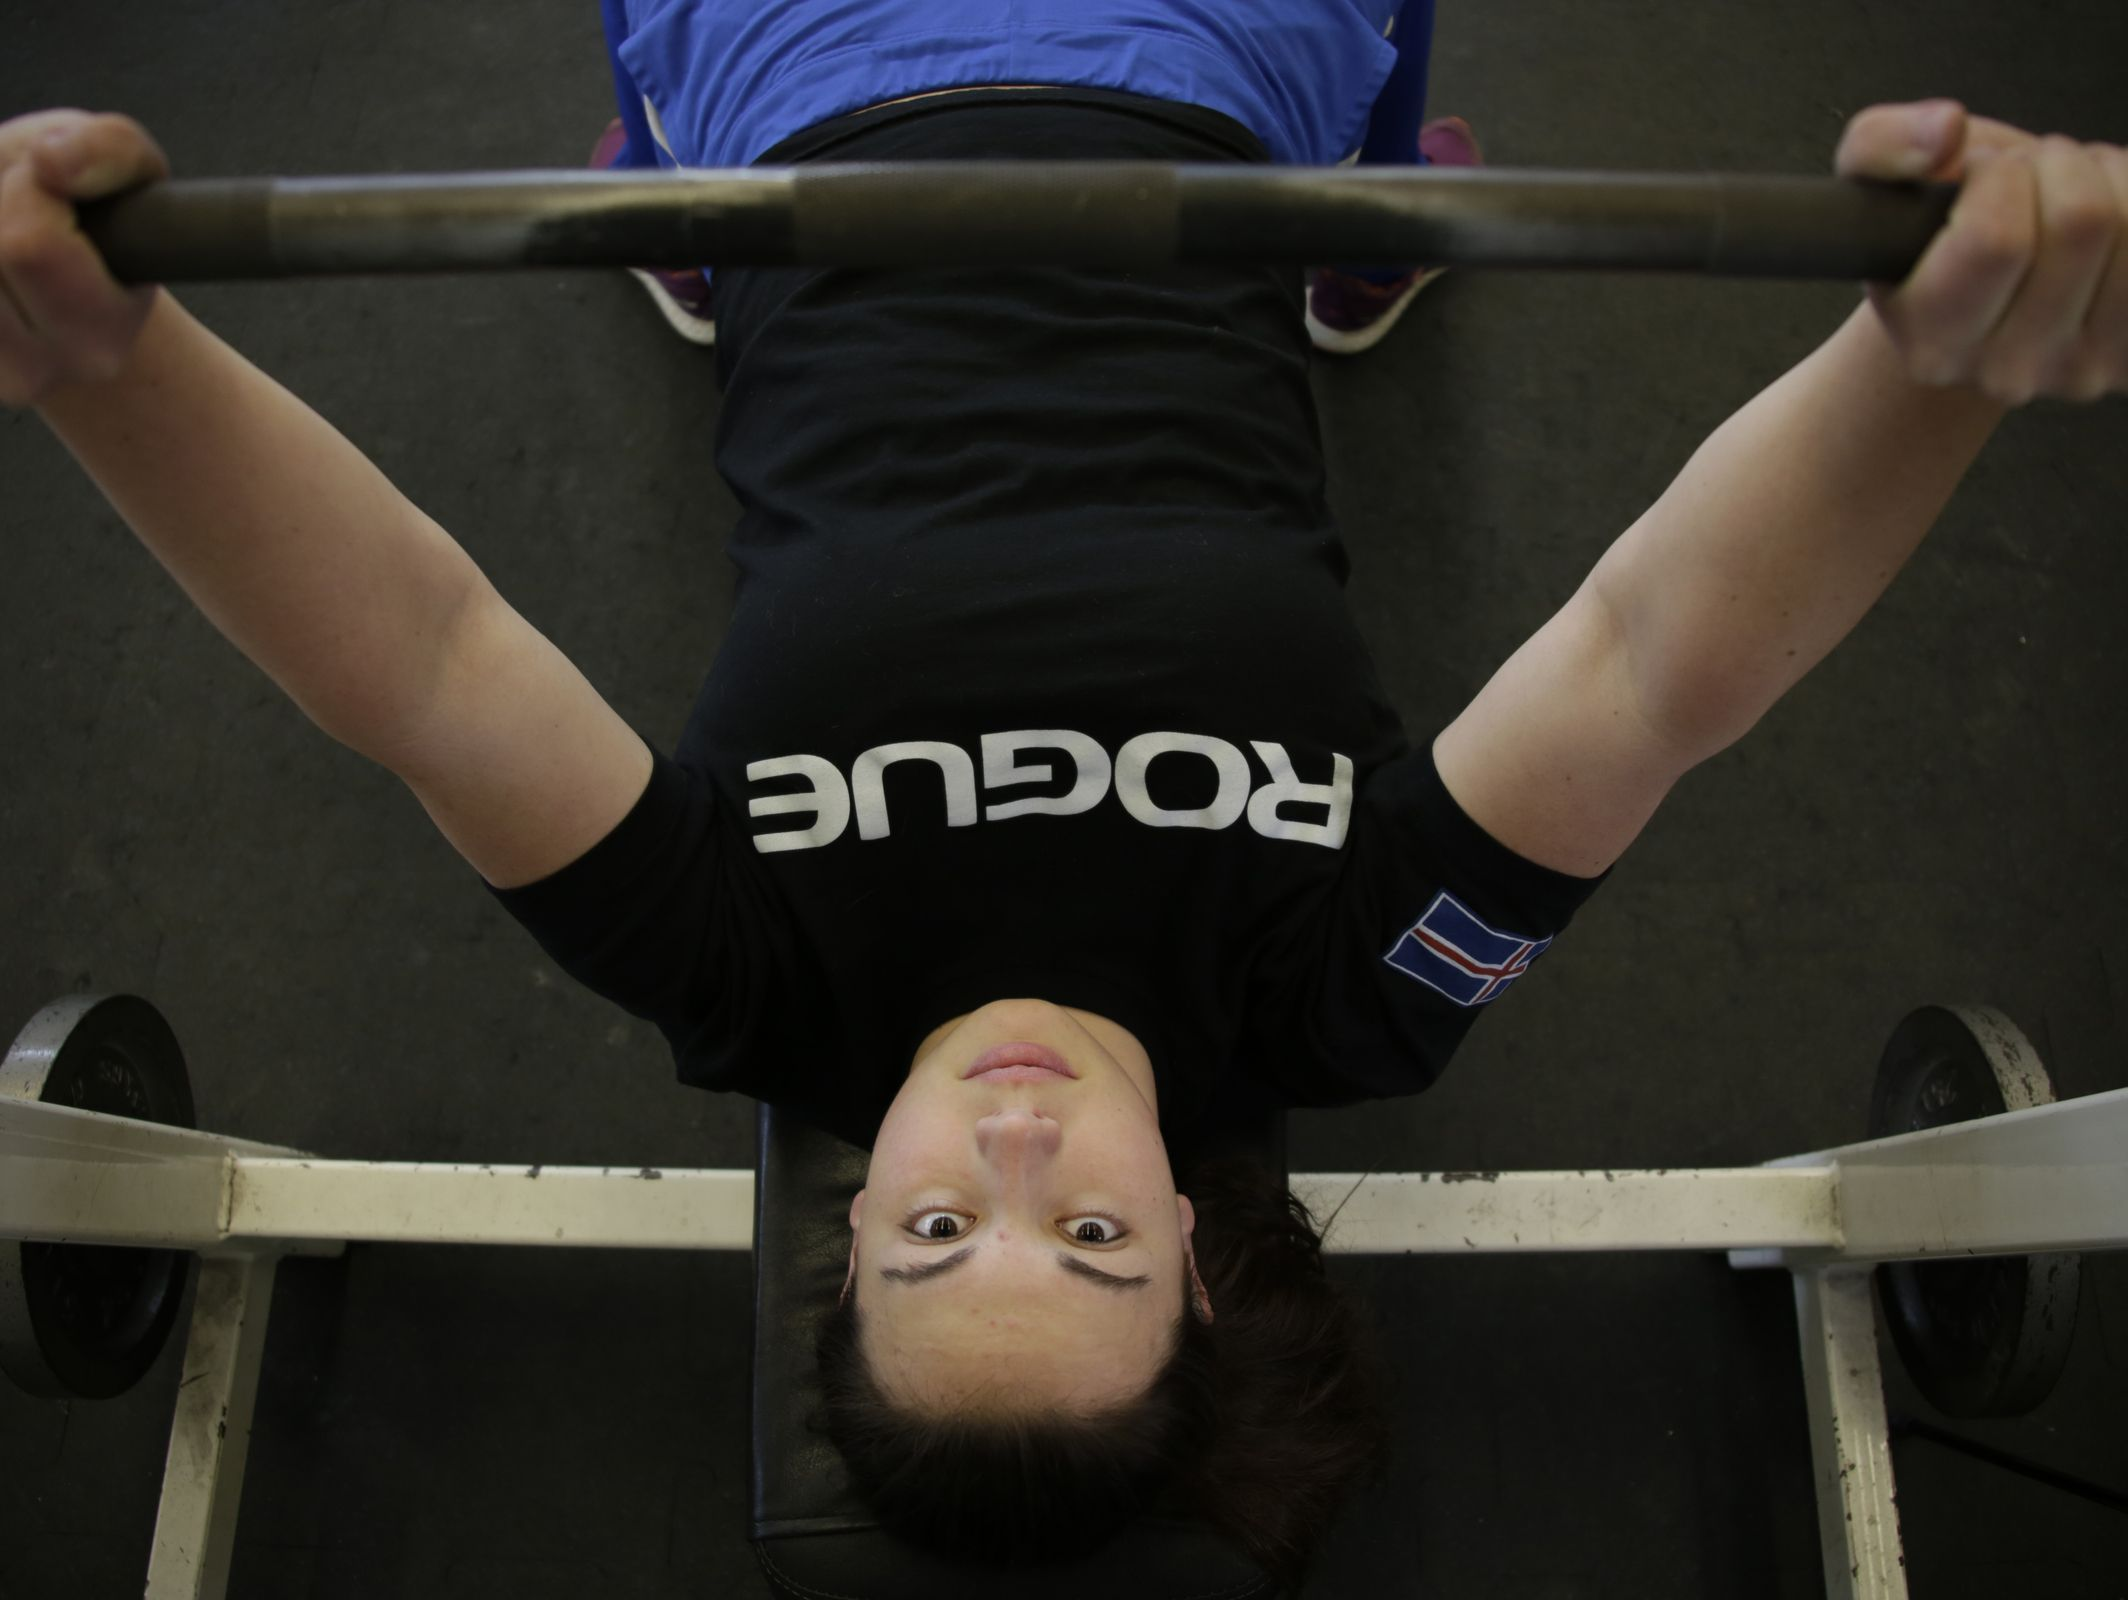 16-year-old Molly Likins of St. Clair is photographed her at St. Clair High School Tuesday Mar. 14, 2017. She just set the state powerlifting bench press record of the 181 pound division by bench pressing 190 pounds.